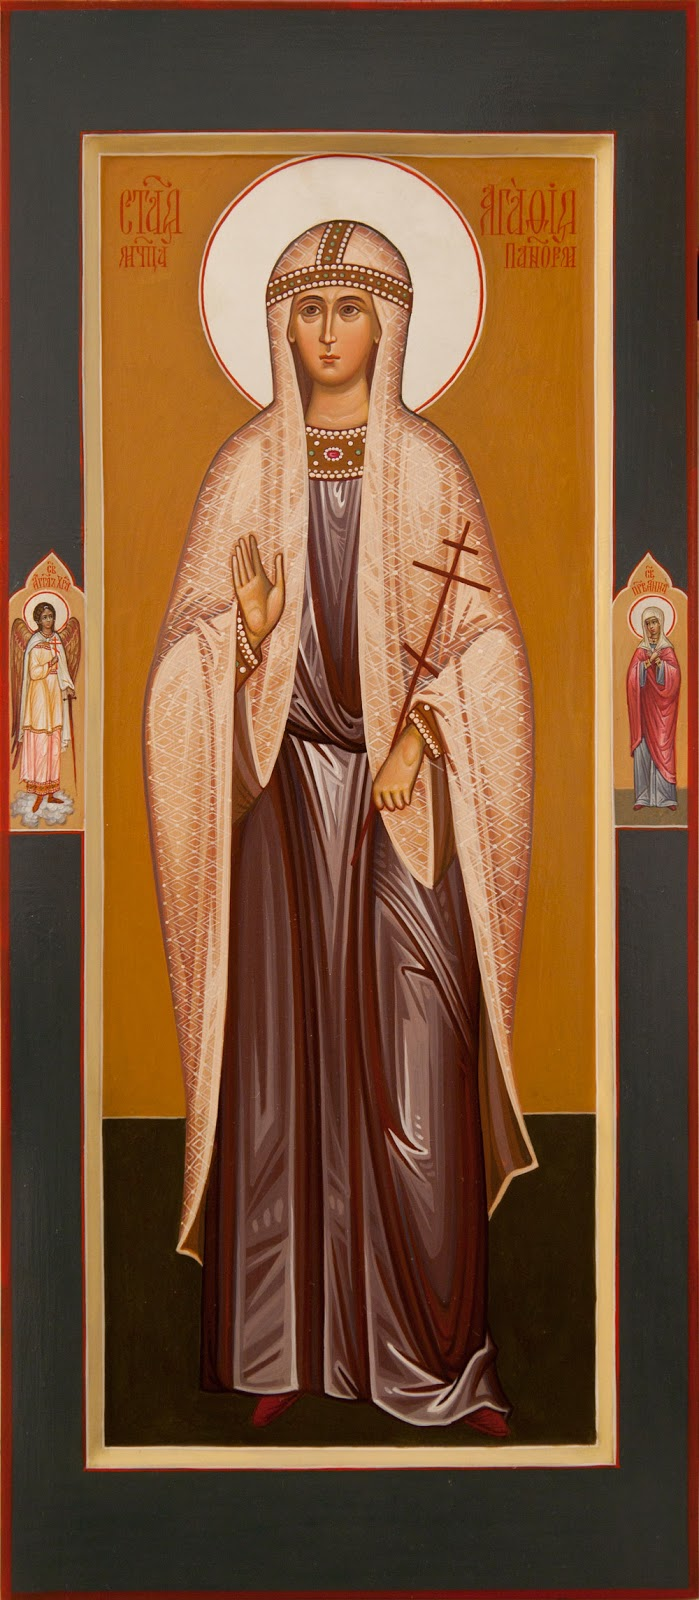 Saint Agathi of Sicily